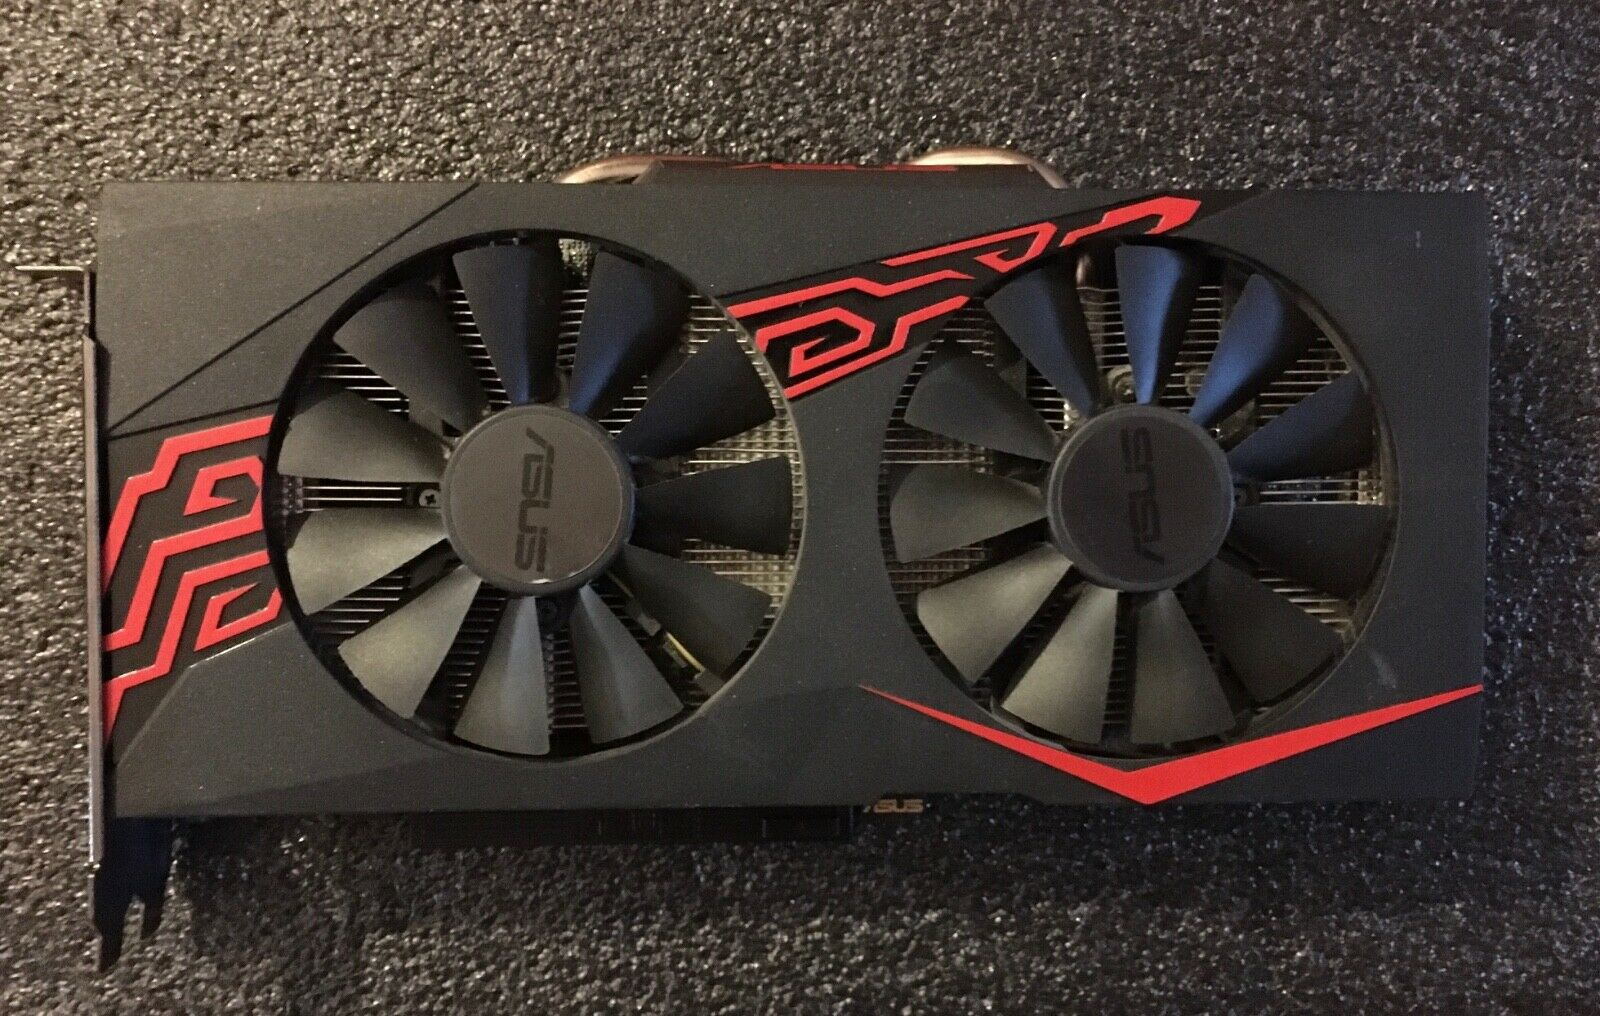 Asus radeon rx 570 4gb  oc amd  gddr5 gpu carte graphique no reserve!